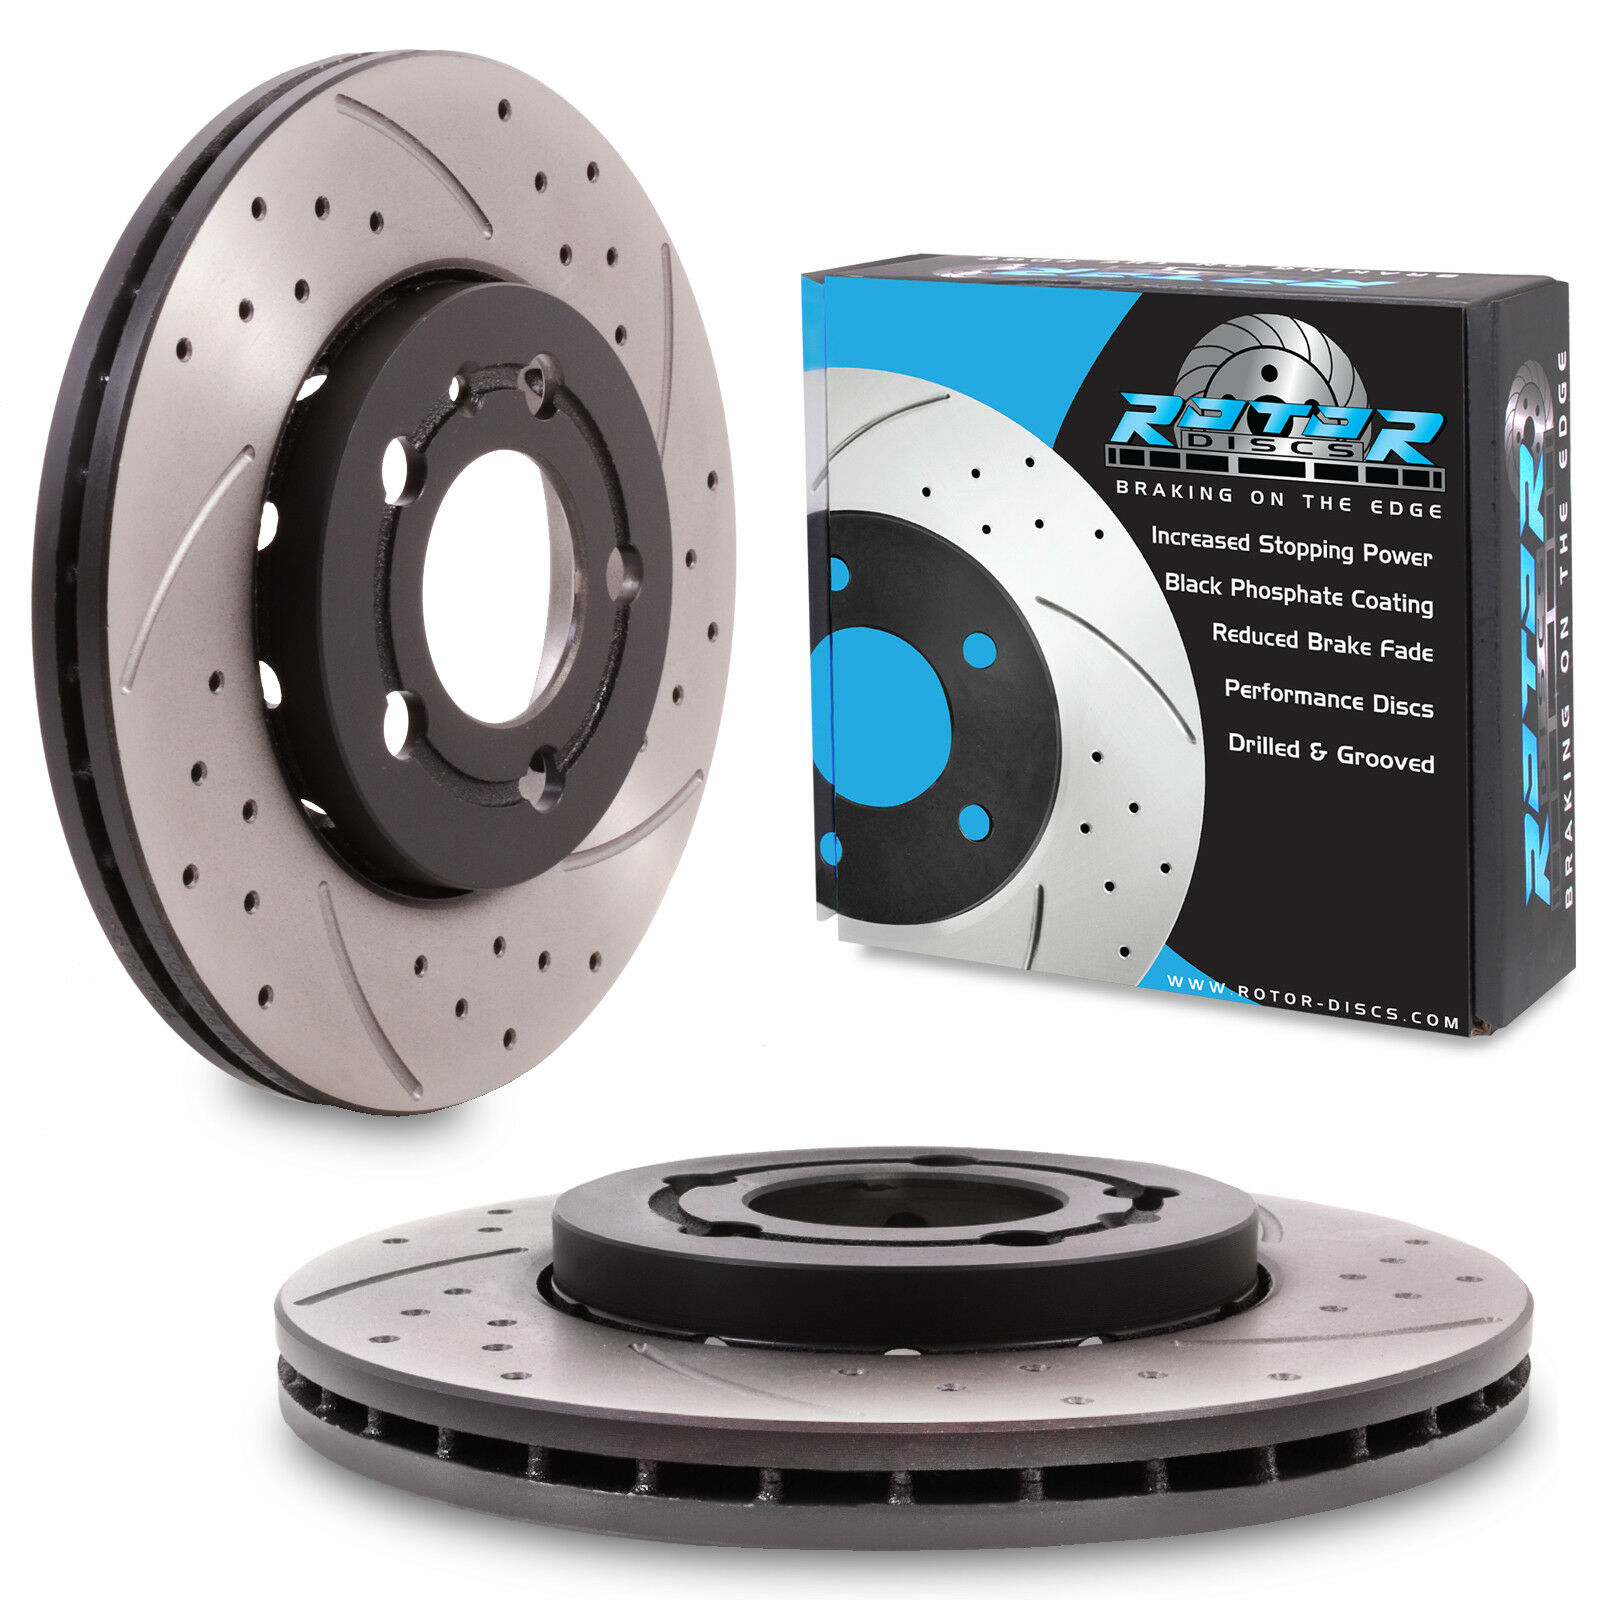 8P1 2.0 TDI 2003-On Drilled /& Grooved REAR Brake Discs AUDI A3